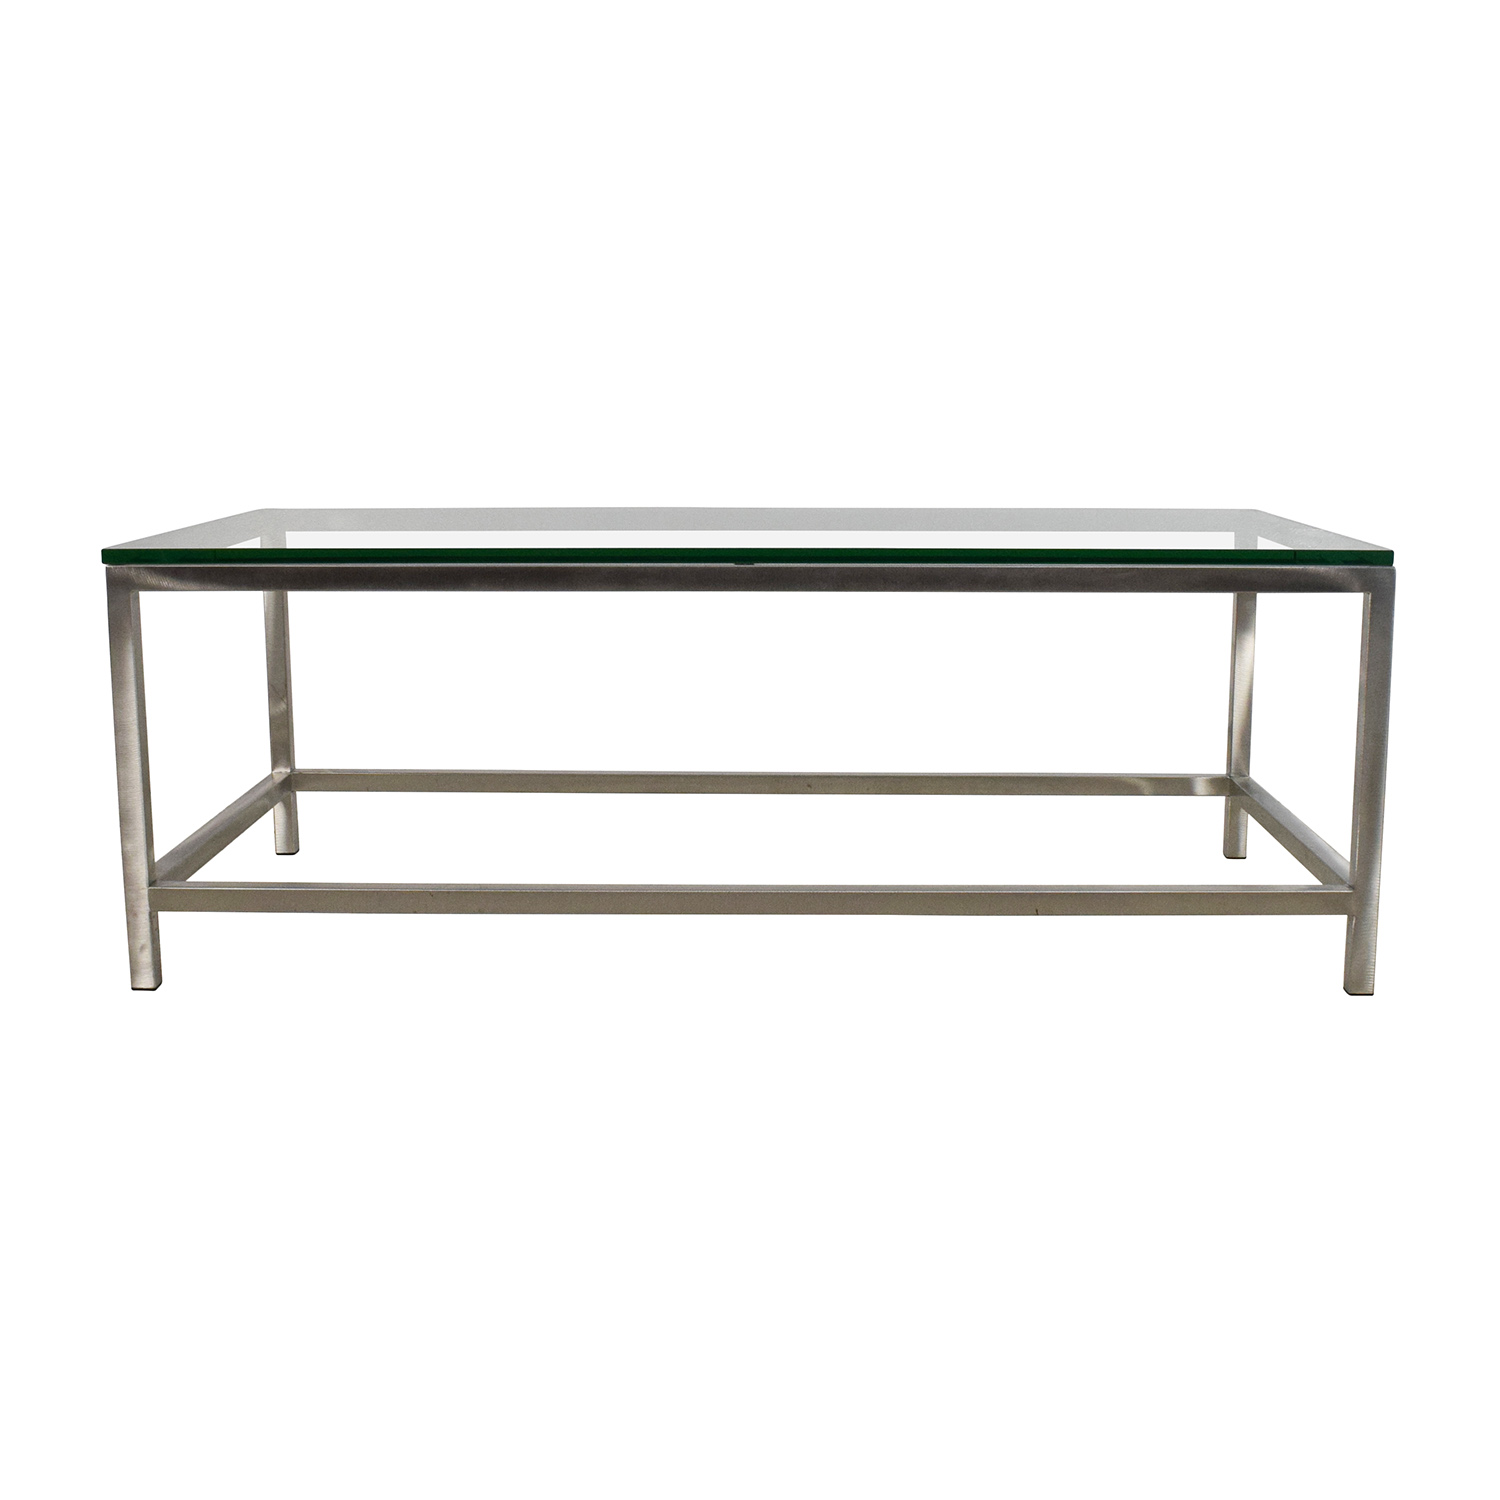 Crate And Barrel Crate U0026 Barrel Era Rectangular Glass Top Coffee Table ...